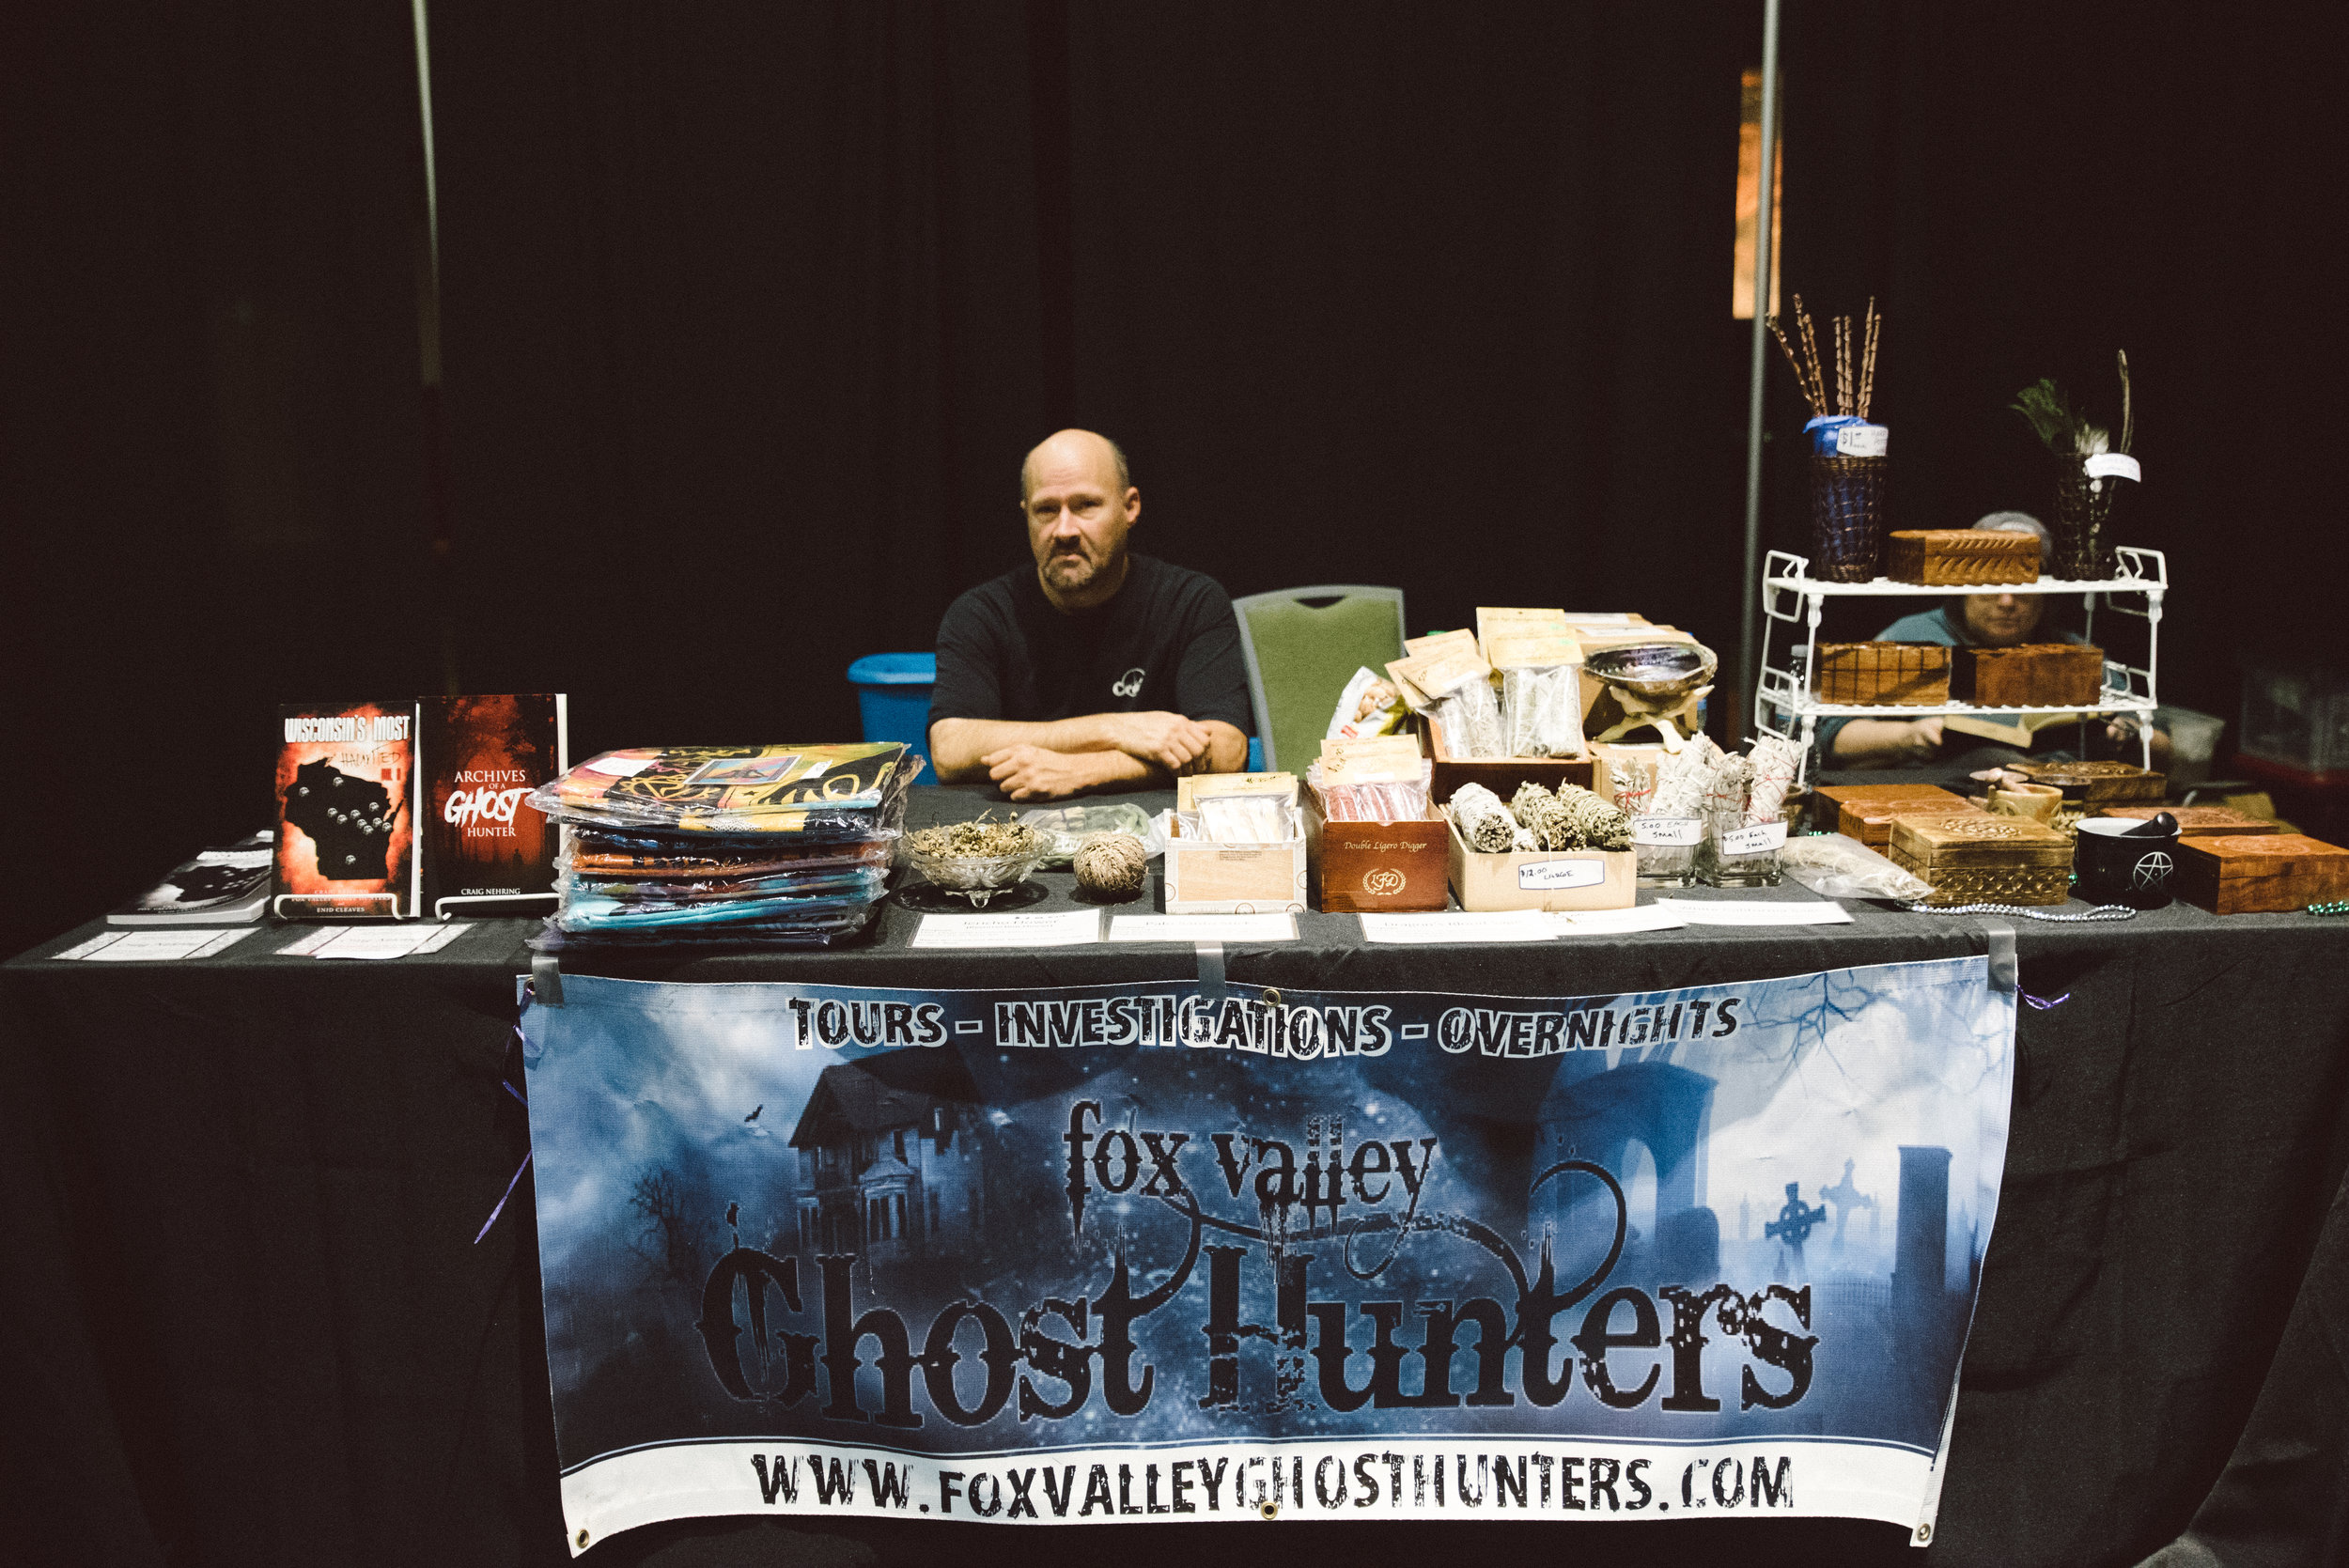 Craig Nehring from Fox Valley Ghost Hunters was there to answer all of your questions regarding the supernatural.